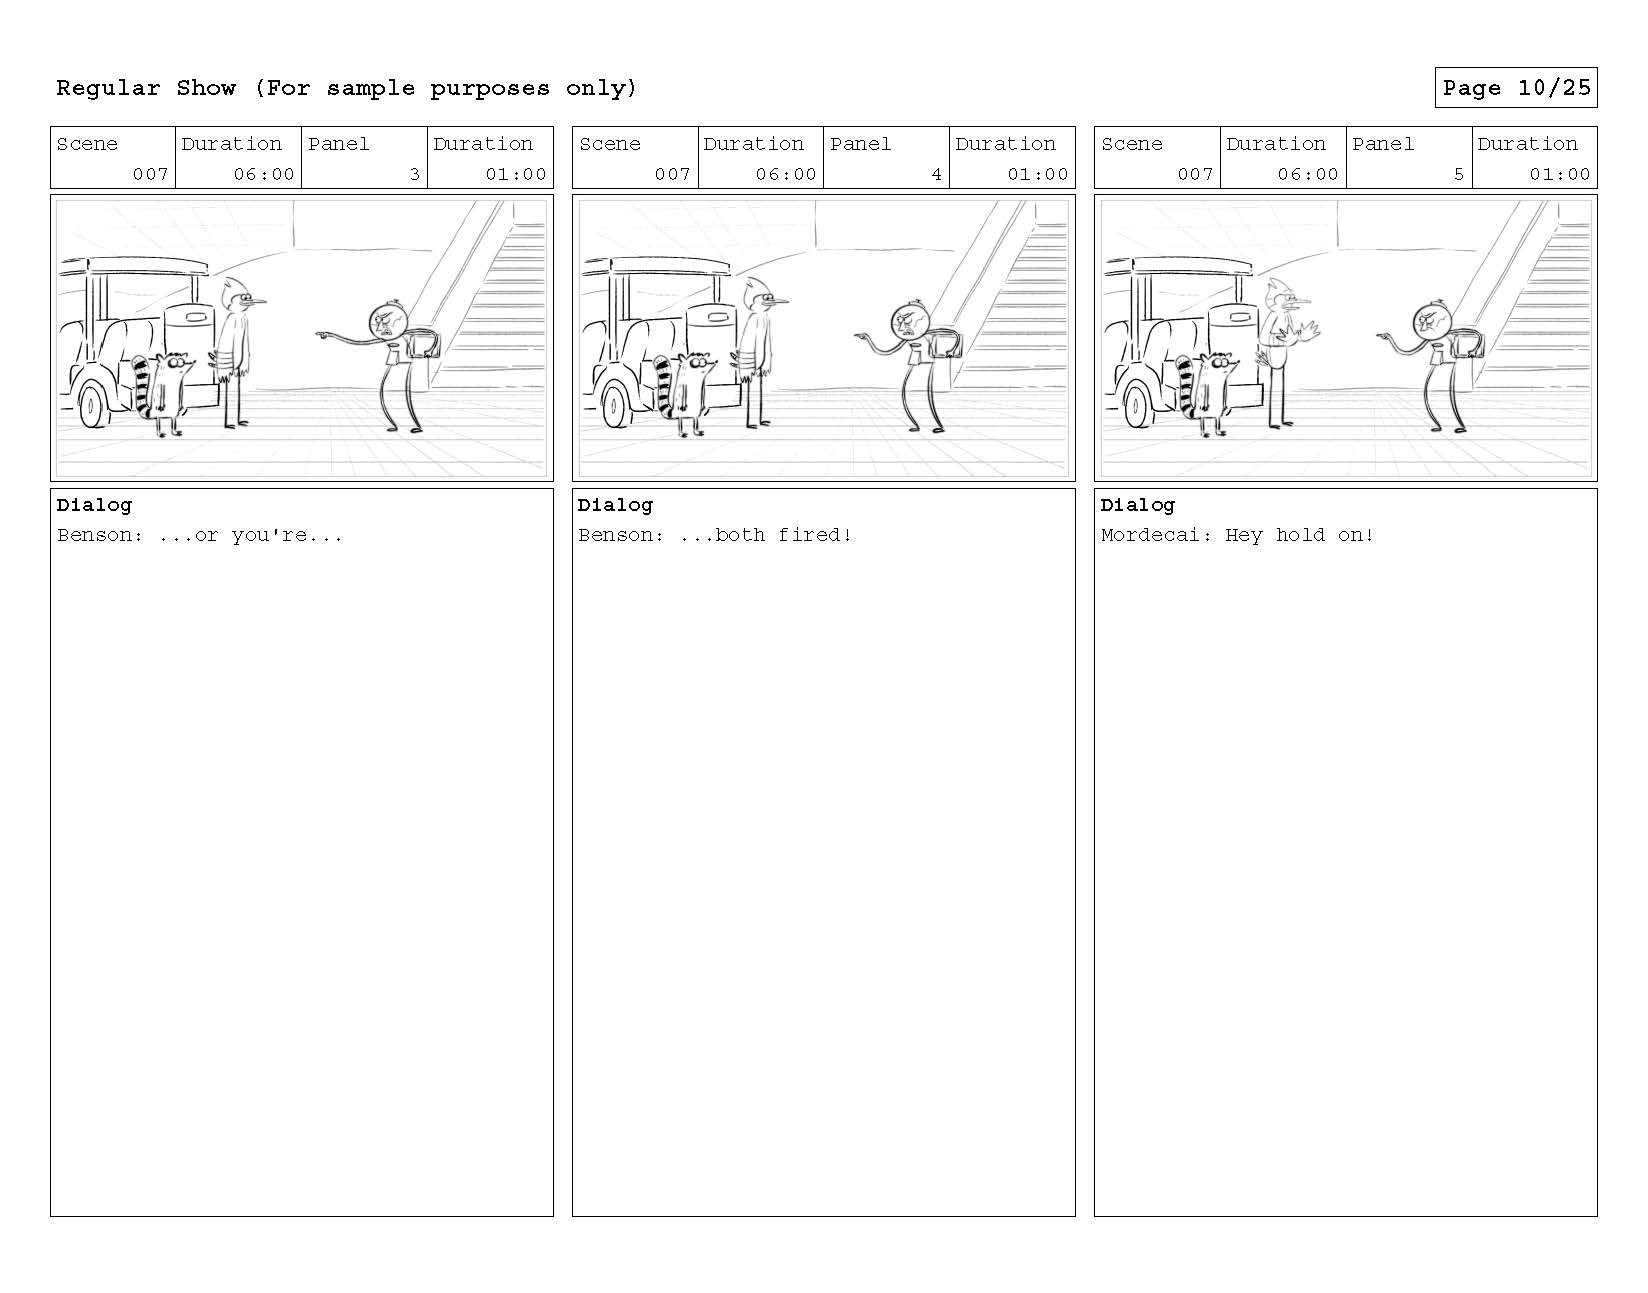 thelfer_rs_sample_Page_11.jpg